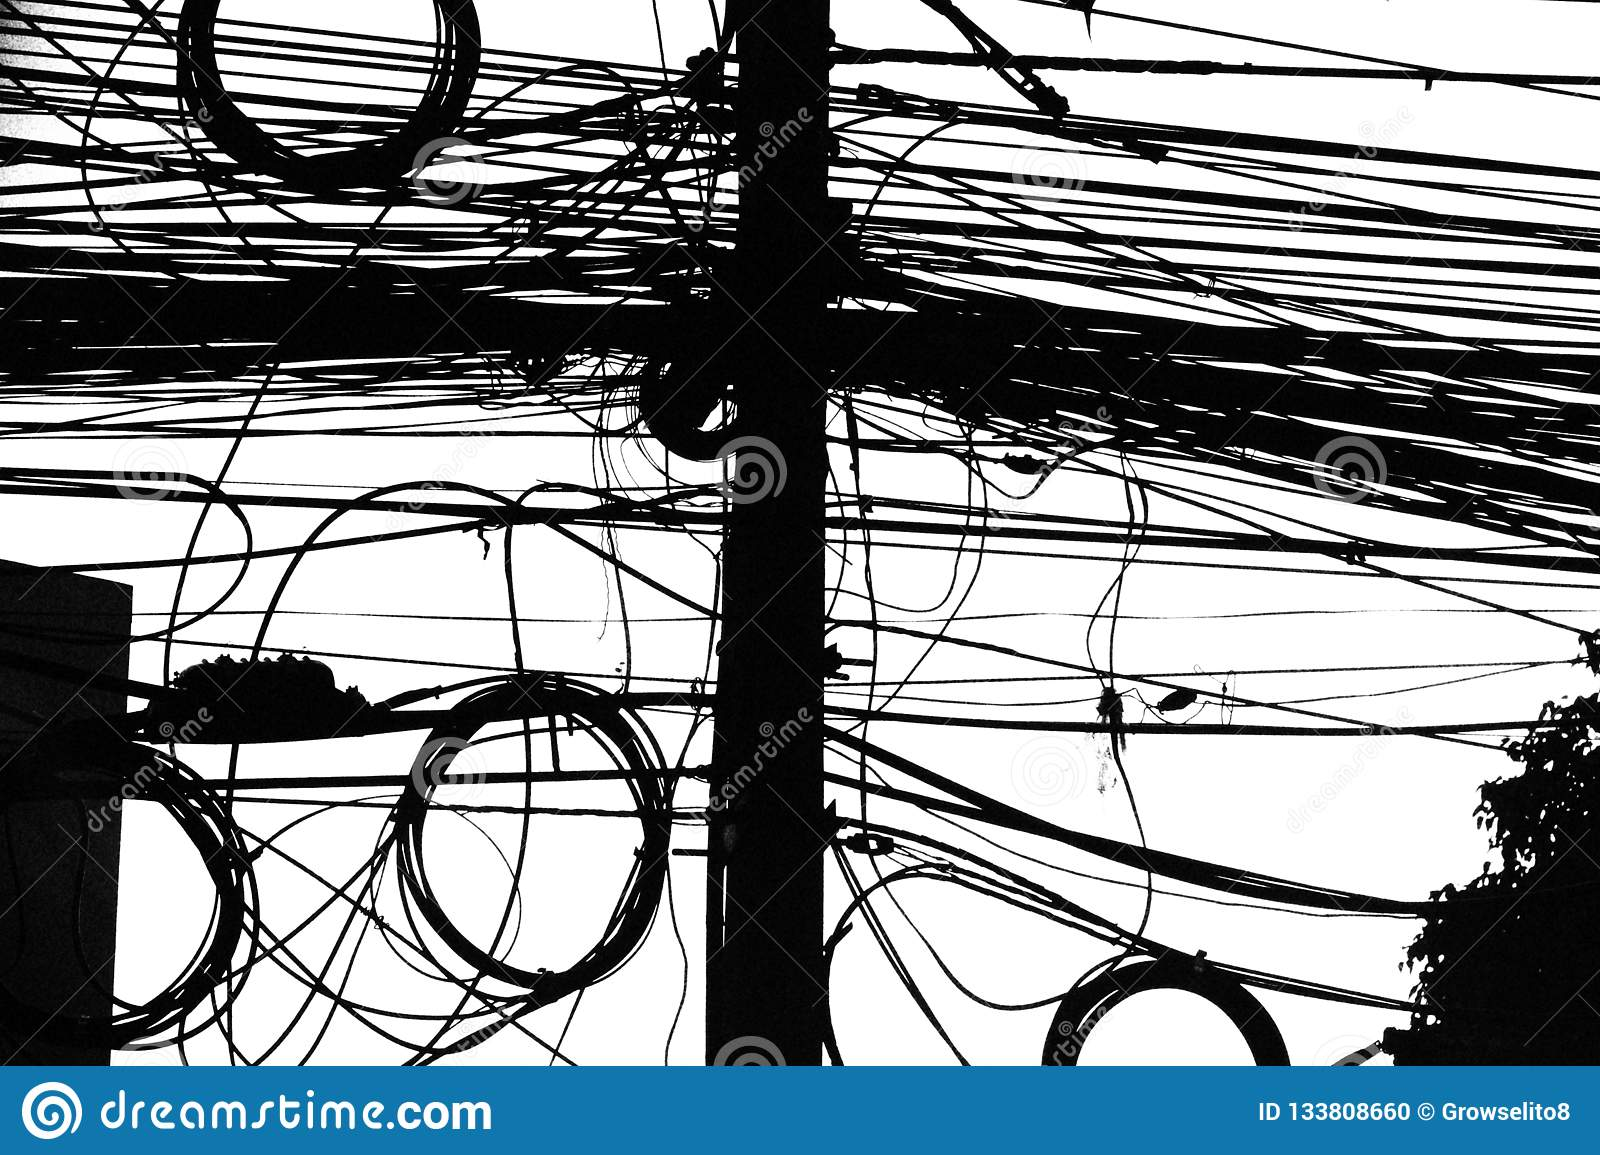 hight resolution of electrical wiring in thailand mess of cables in black and white